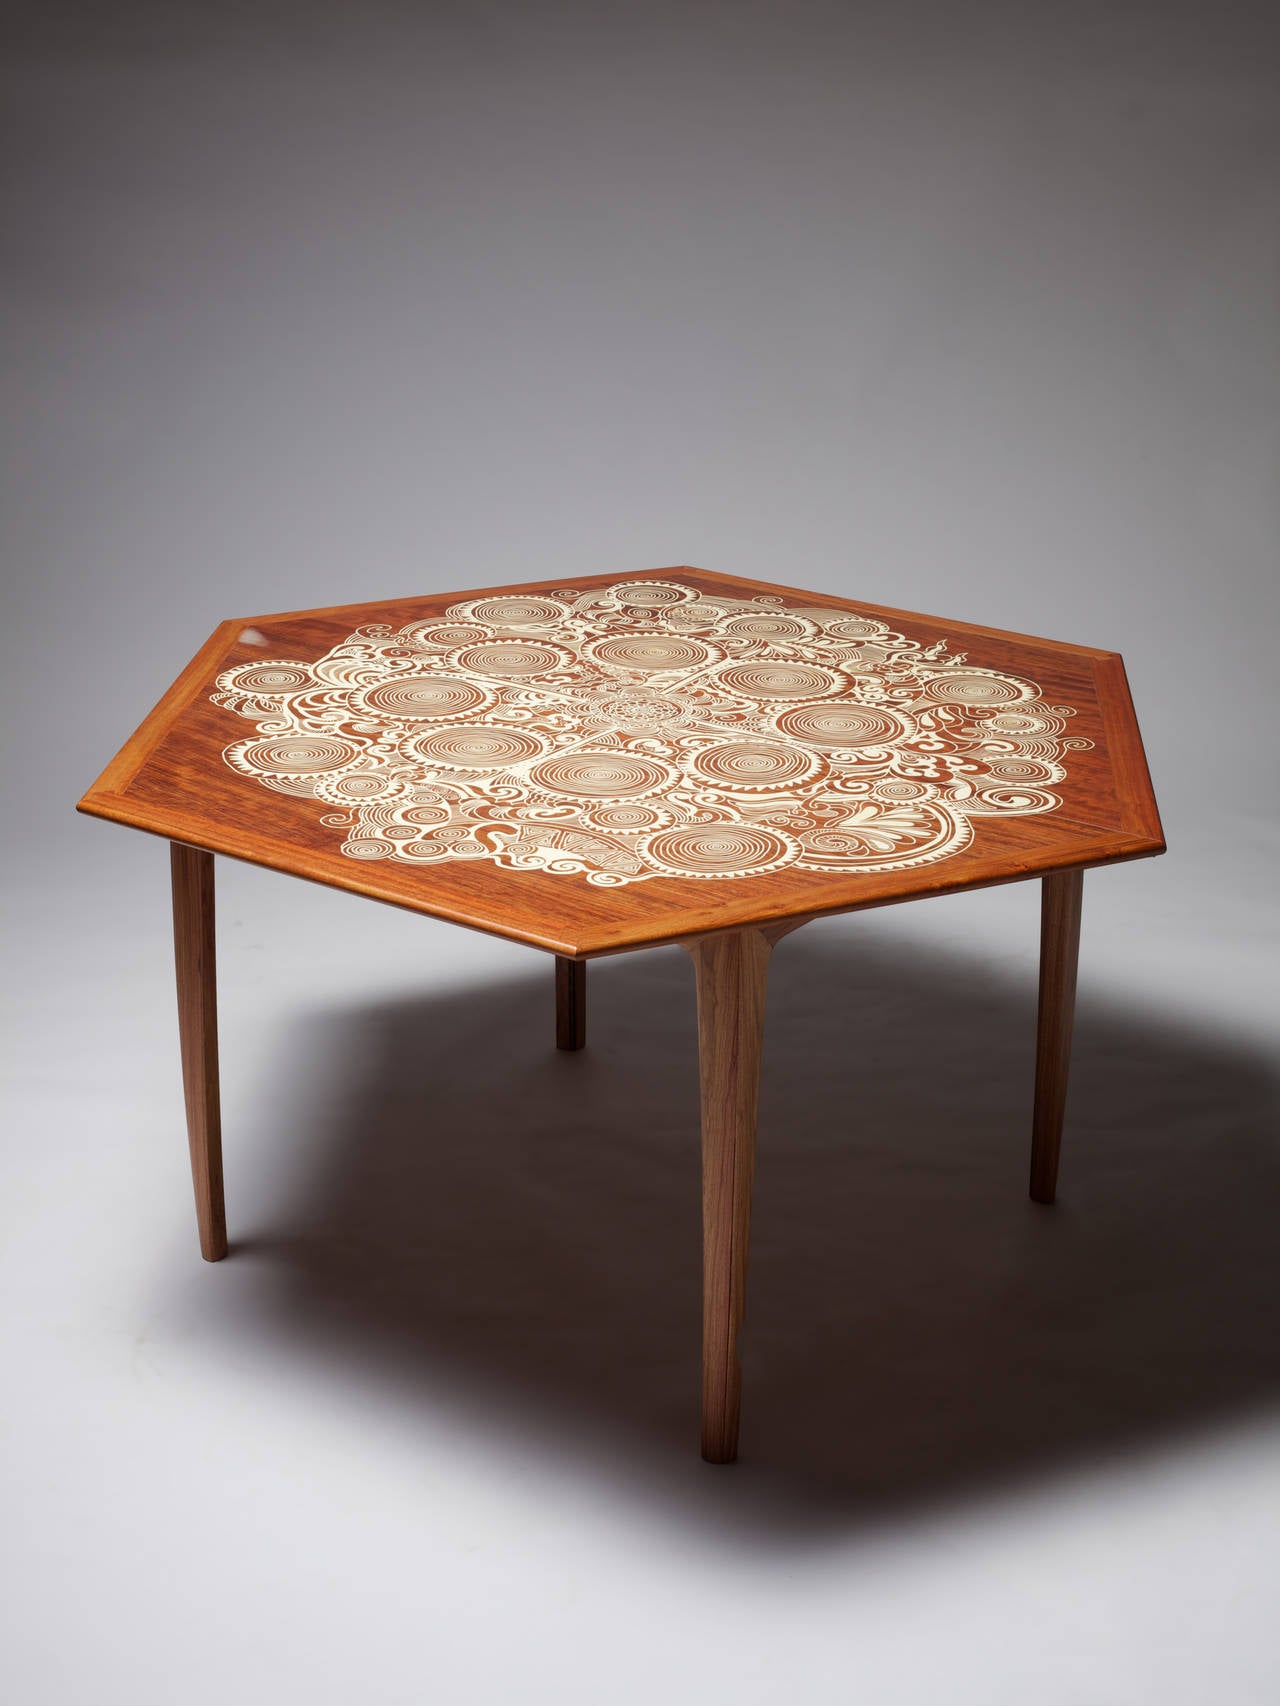 Rosewood Folding Dining Table Quot Swirl Quot By Naihan Li For